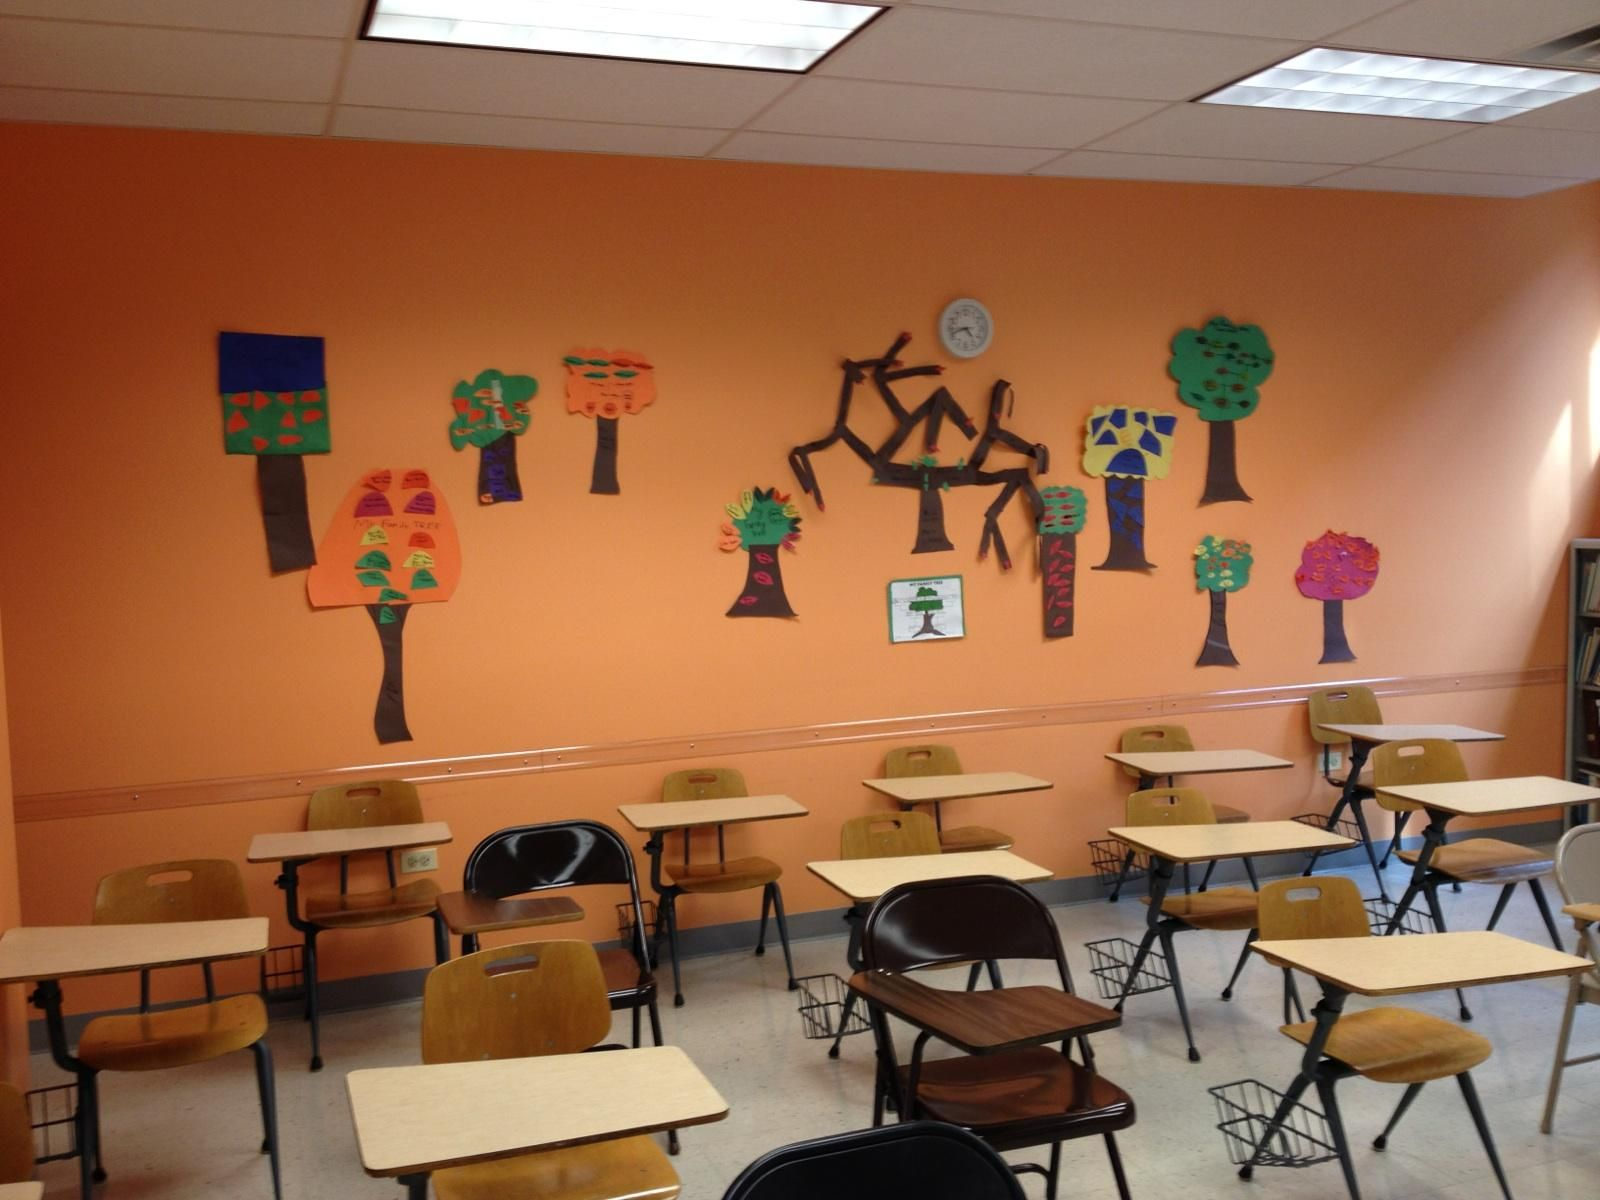 The classroom at Temple Beth-El, Northbrook, Ill., that now houses the JGSI genealogical library is decorated with children's family trees.